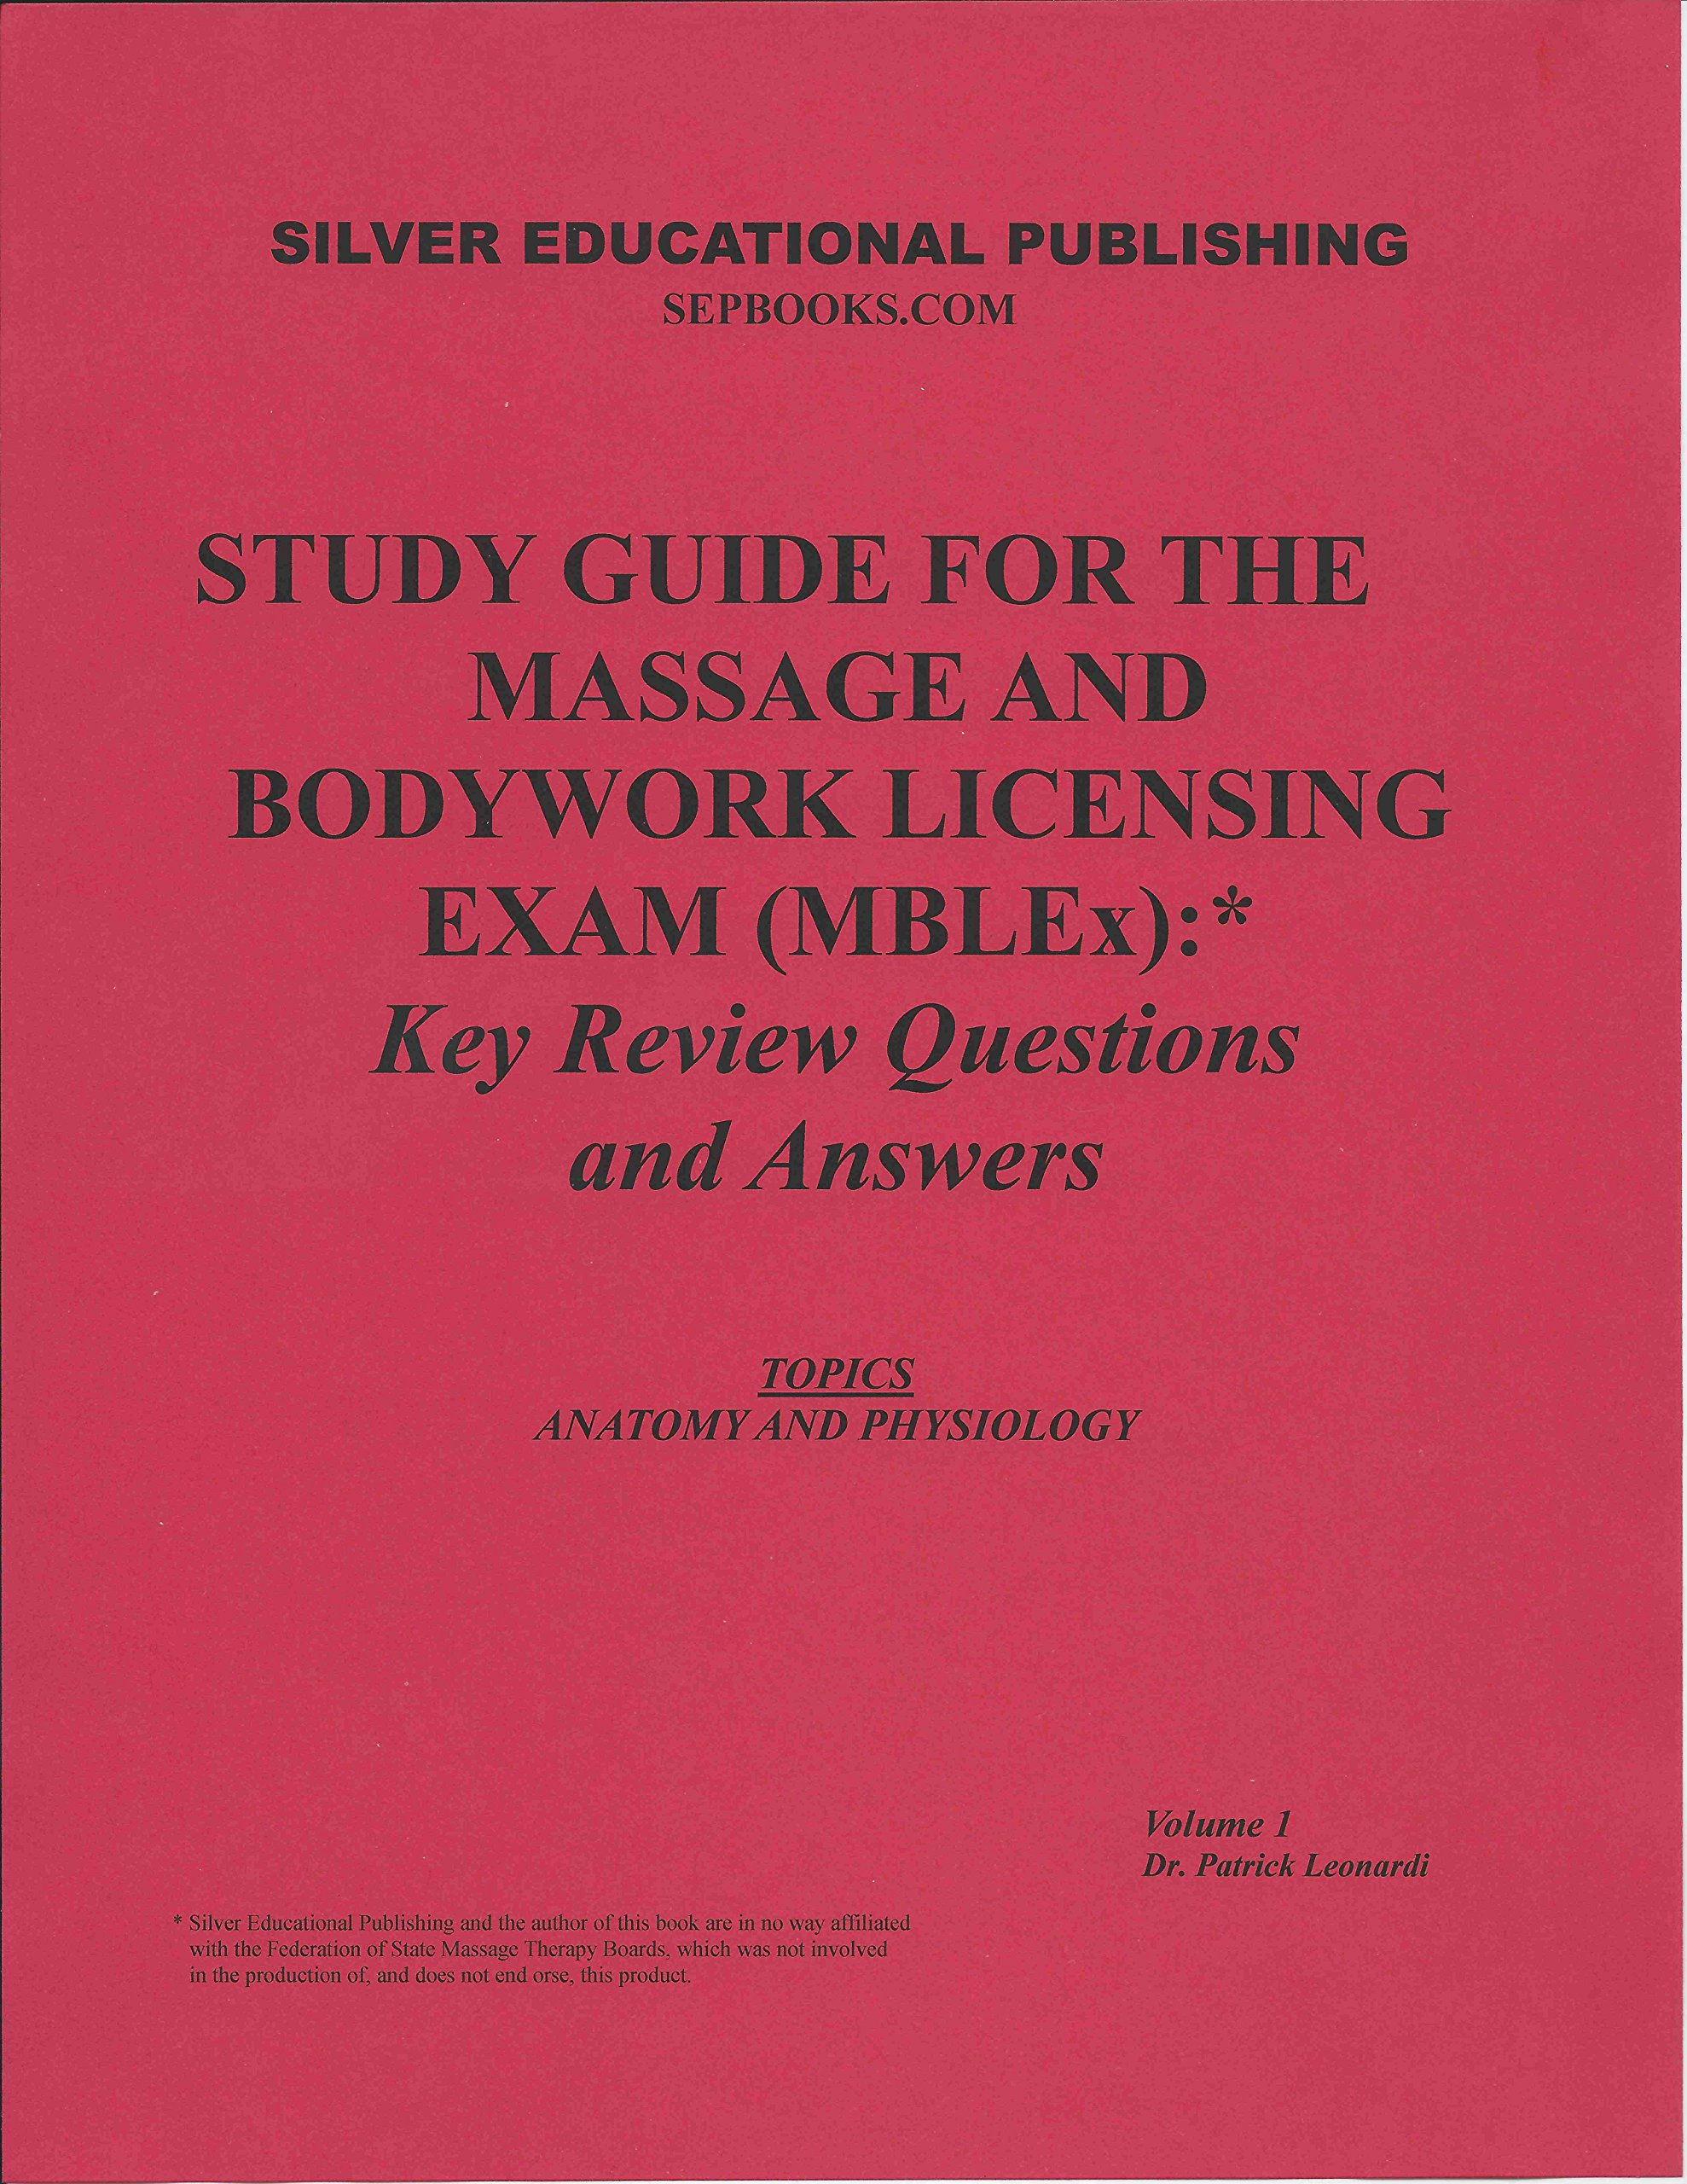 Study Guide for the Massage and Bodywork Licensing Exam